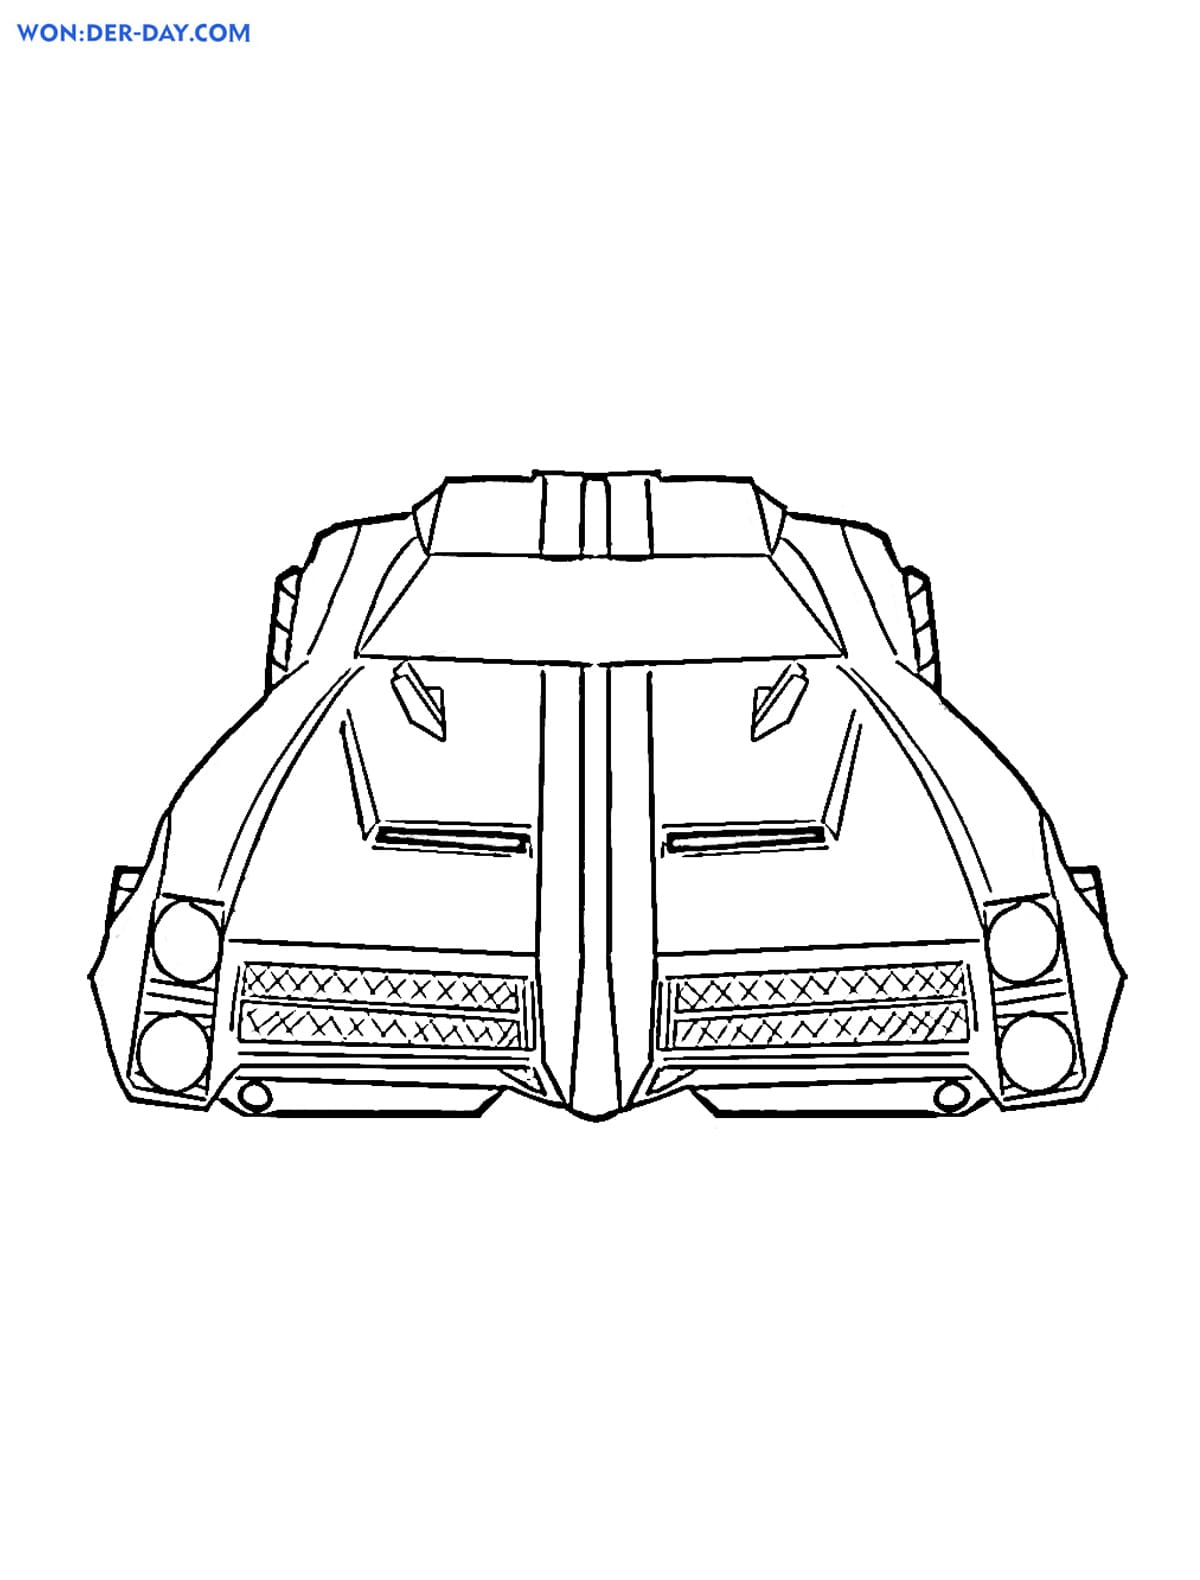 Rocket League Coloring Pages Print For Free Wonder Day 467,361 likes · 13,308 talking about this. rocket league coloring pages print